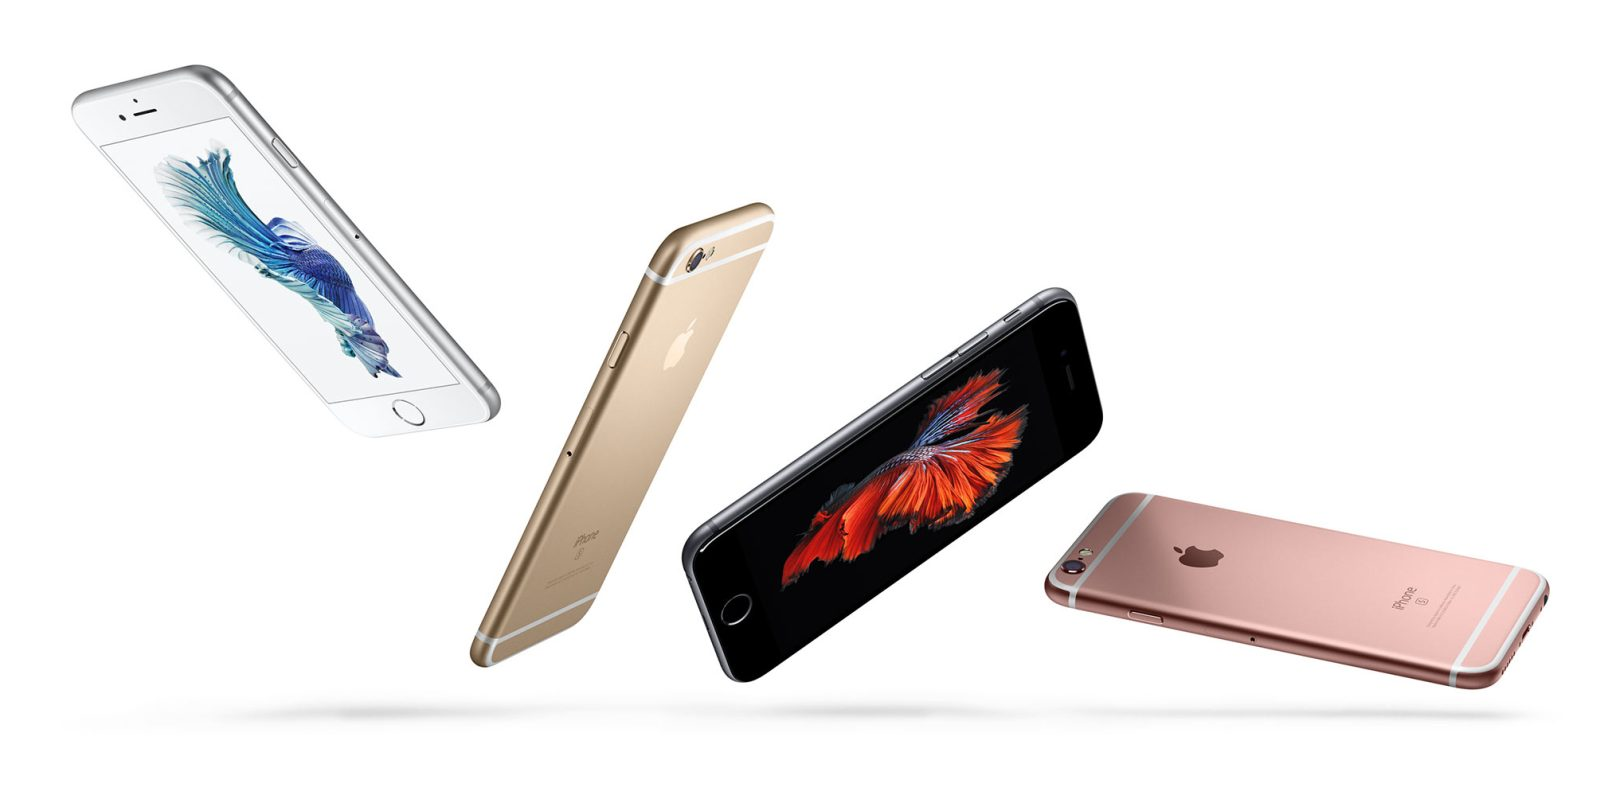 iPhone 6s now has iOS 12 and this refurb deal is perfect for the kids from $210 (Orig. $649+)